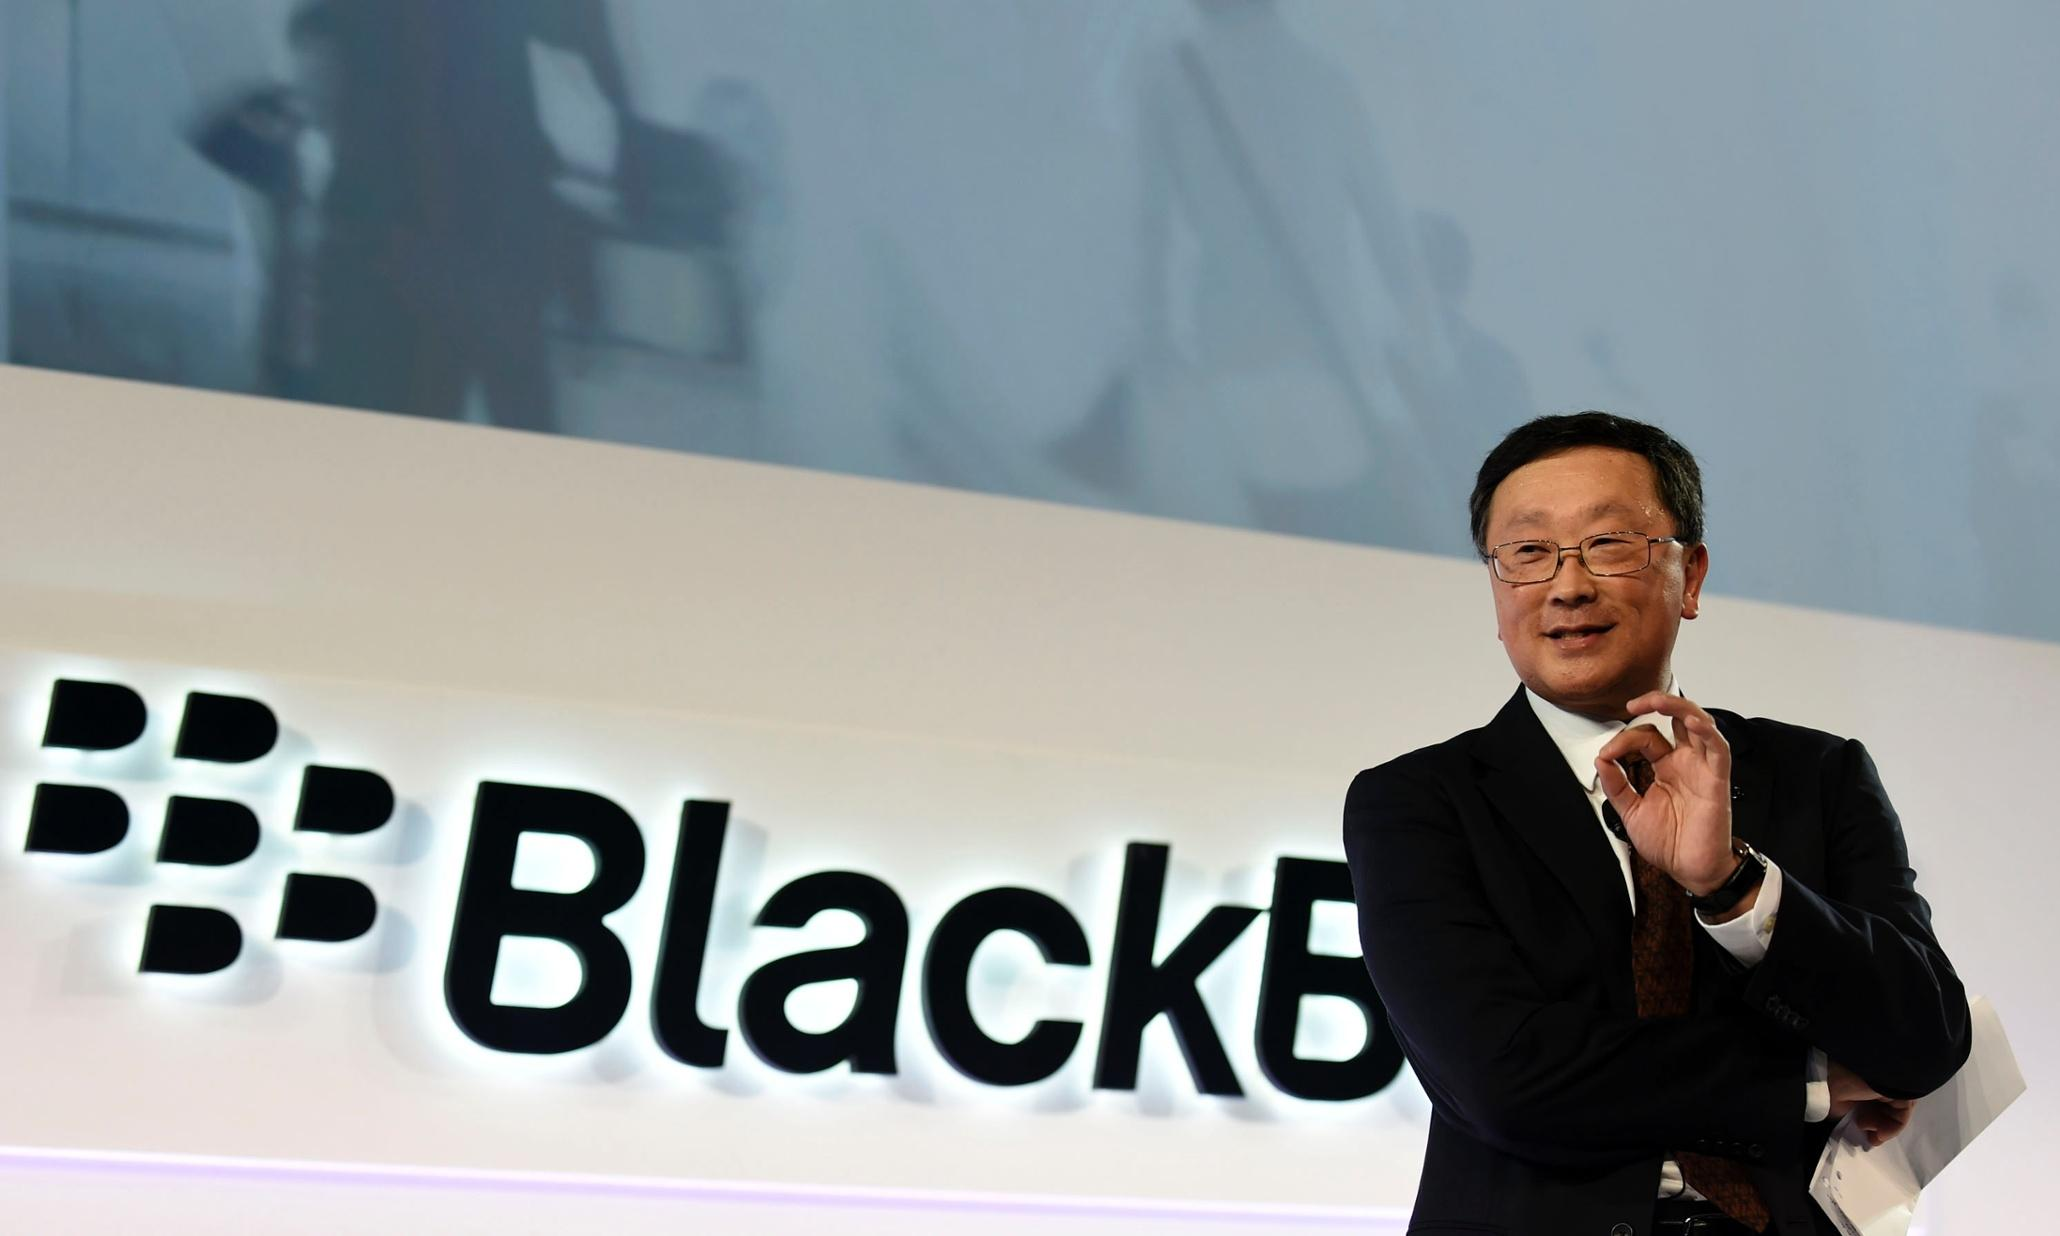 BlackBerry Limited (NASDAQ:BBRY) Stock in Motion